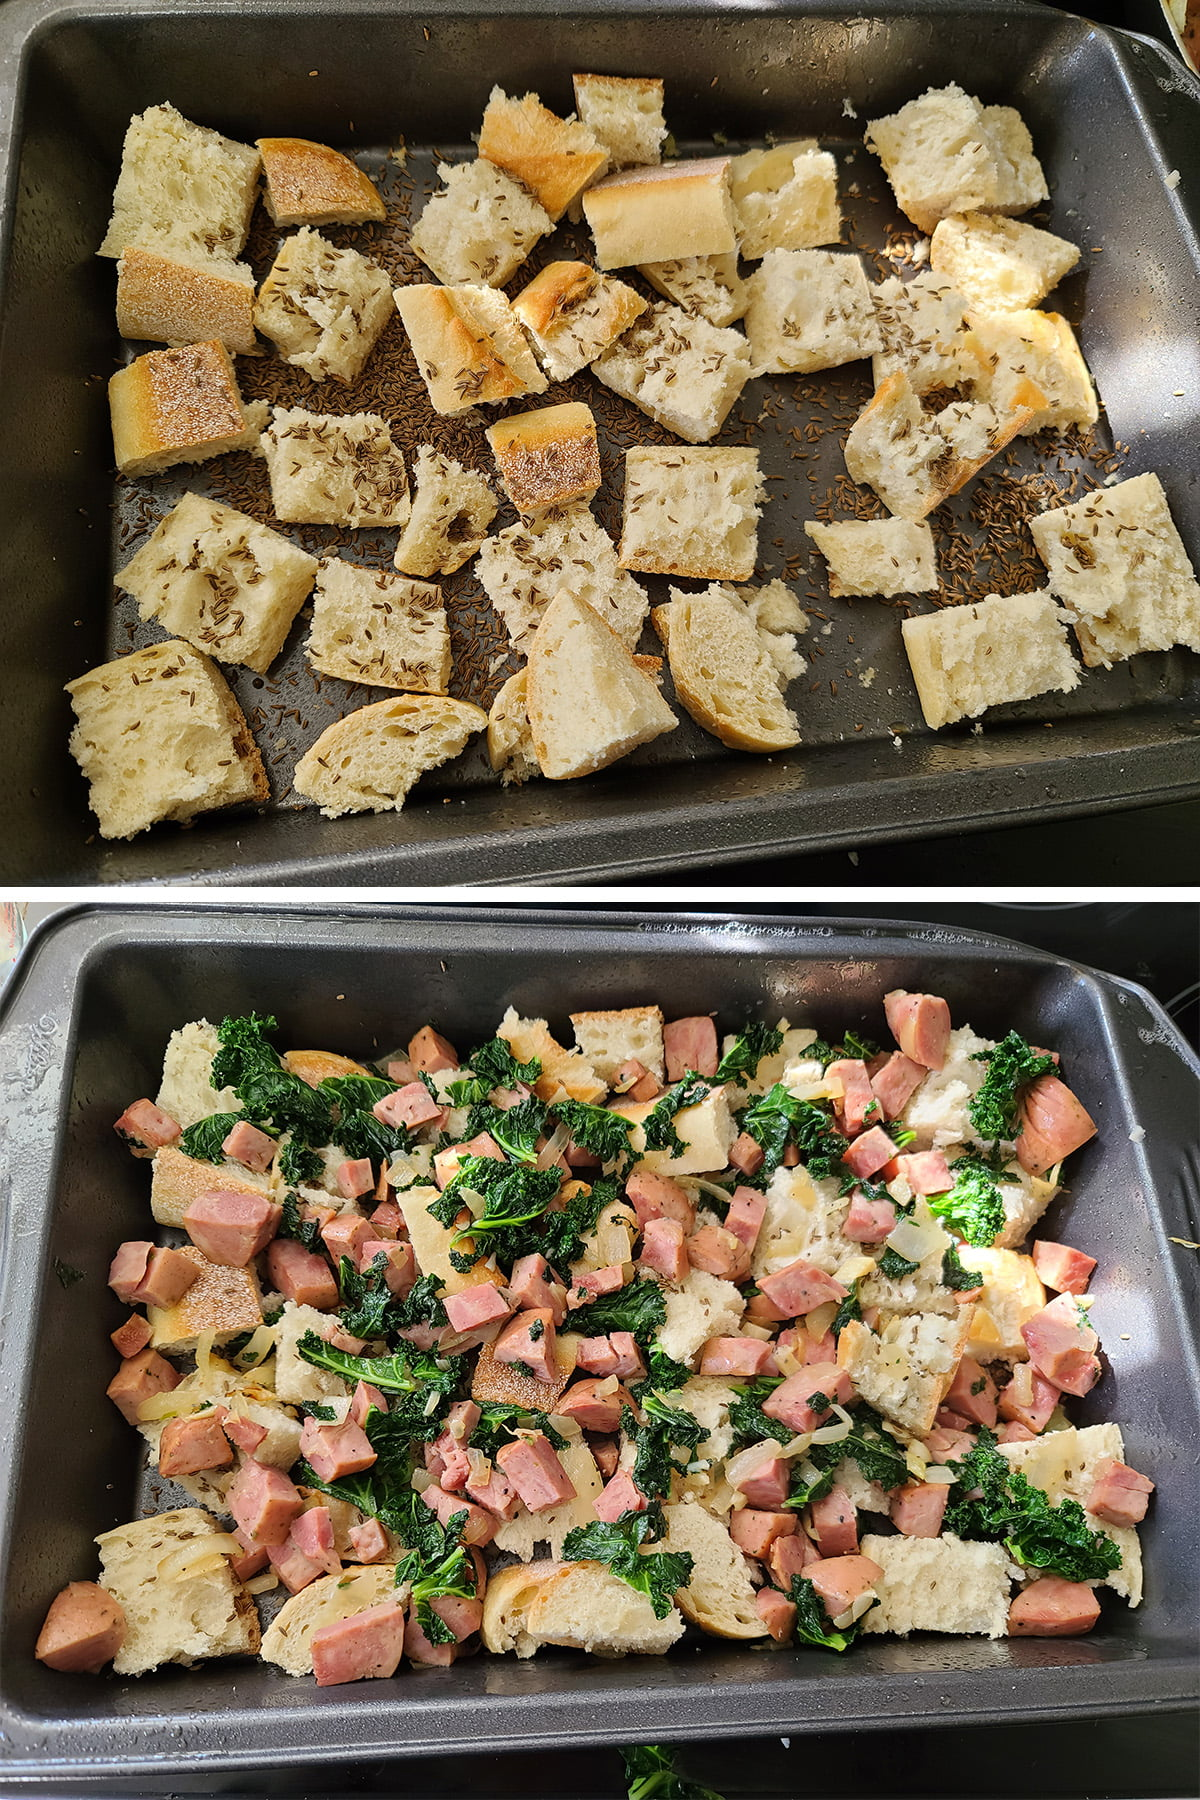 A two part compilation image showing bread cubes in a pan, and then those cubes covered with the kale and meat mixture.